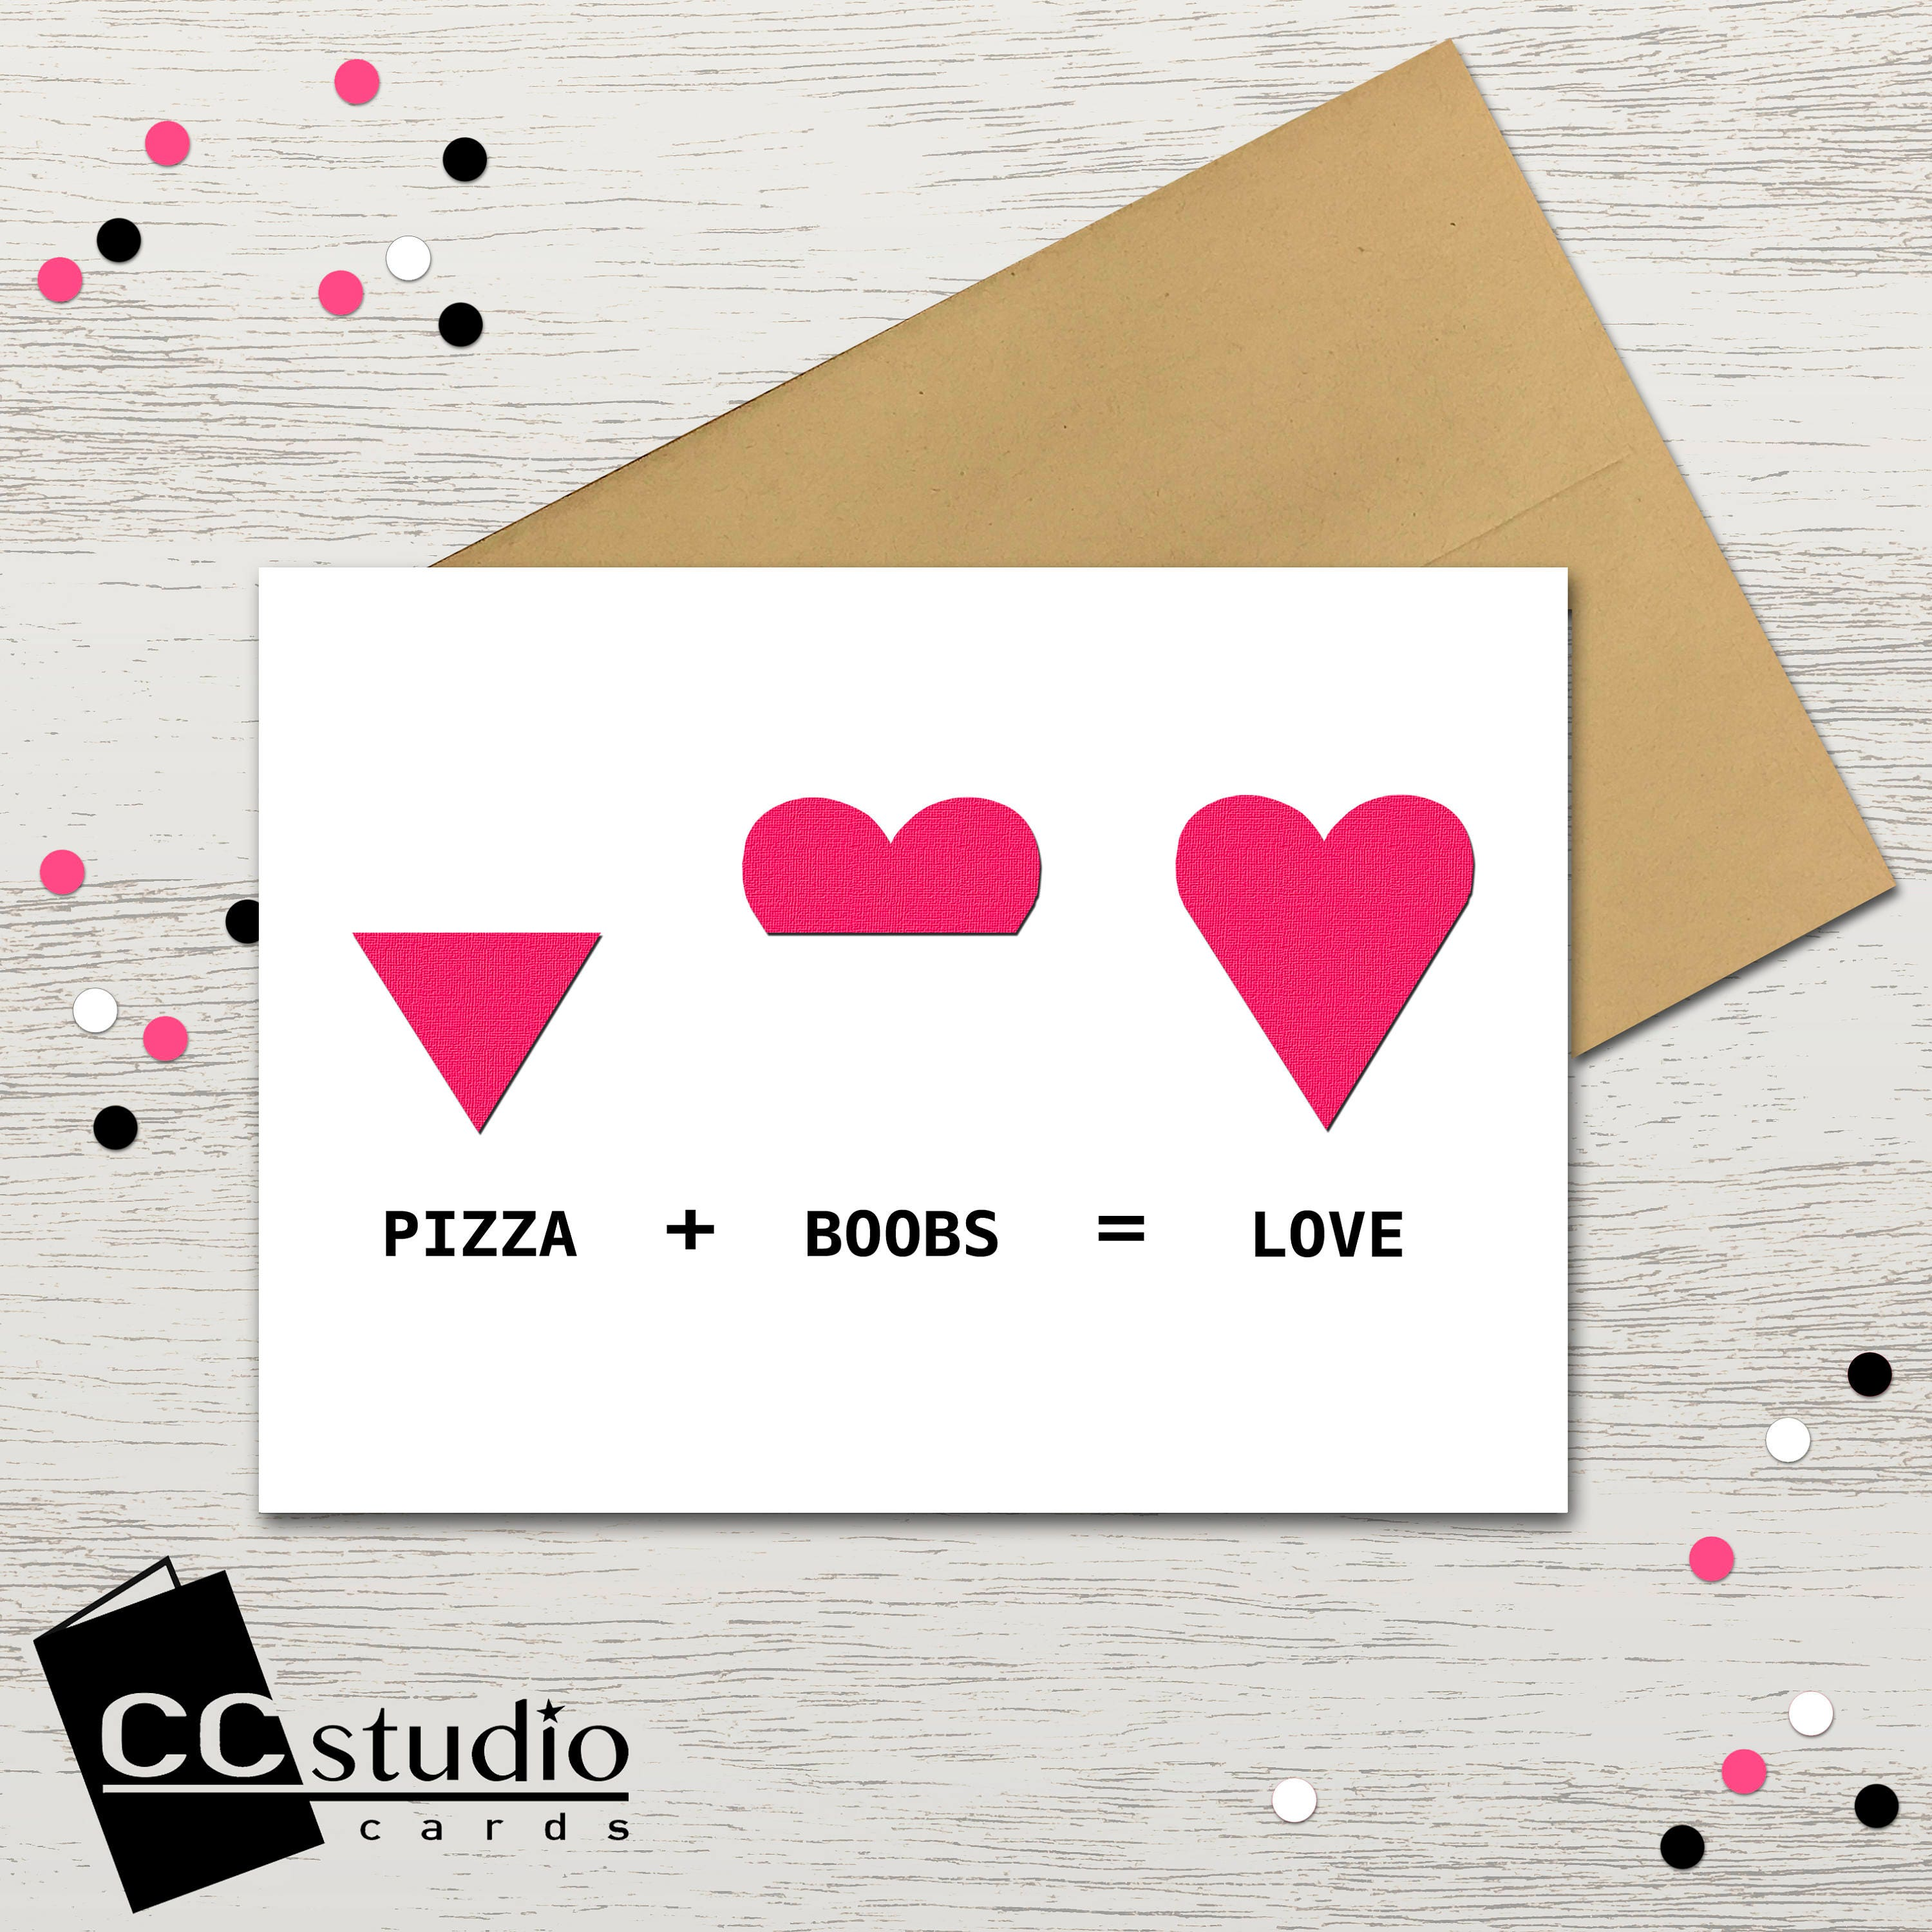 Pizza And Boobs Equal Love Valentines Day Card Suggestive Anniversary Humorous Cards Funny Birthday Blank